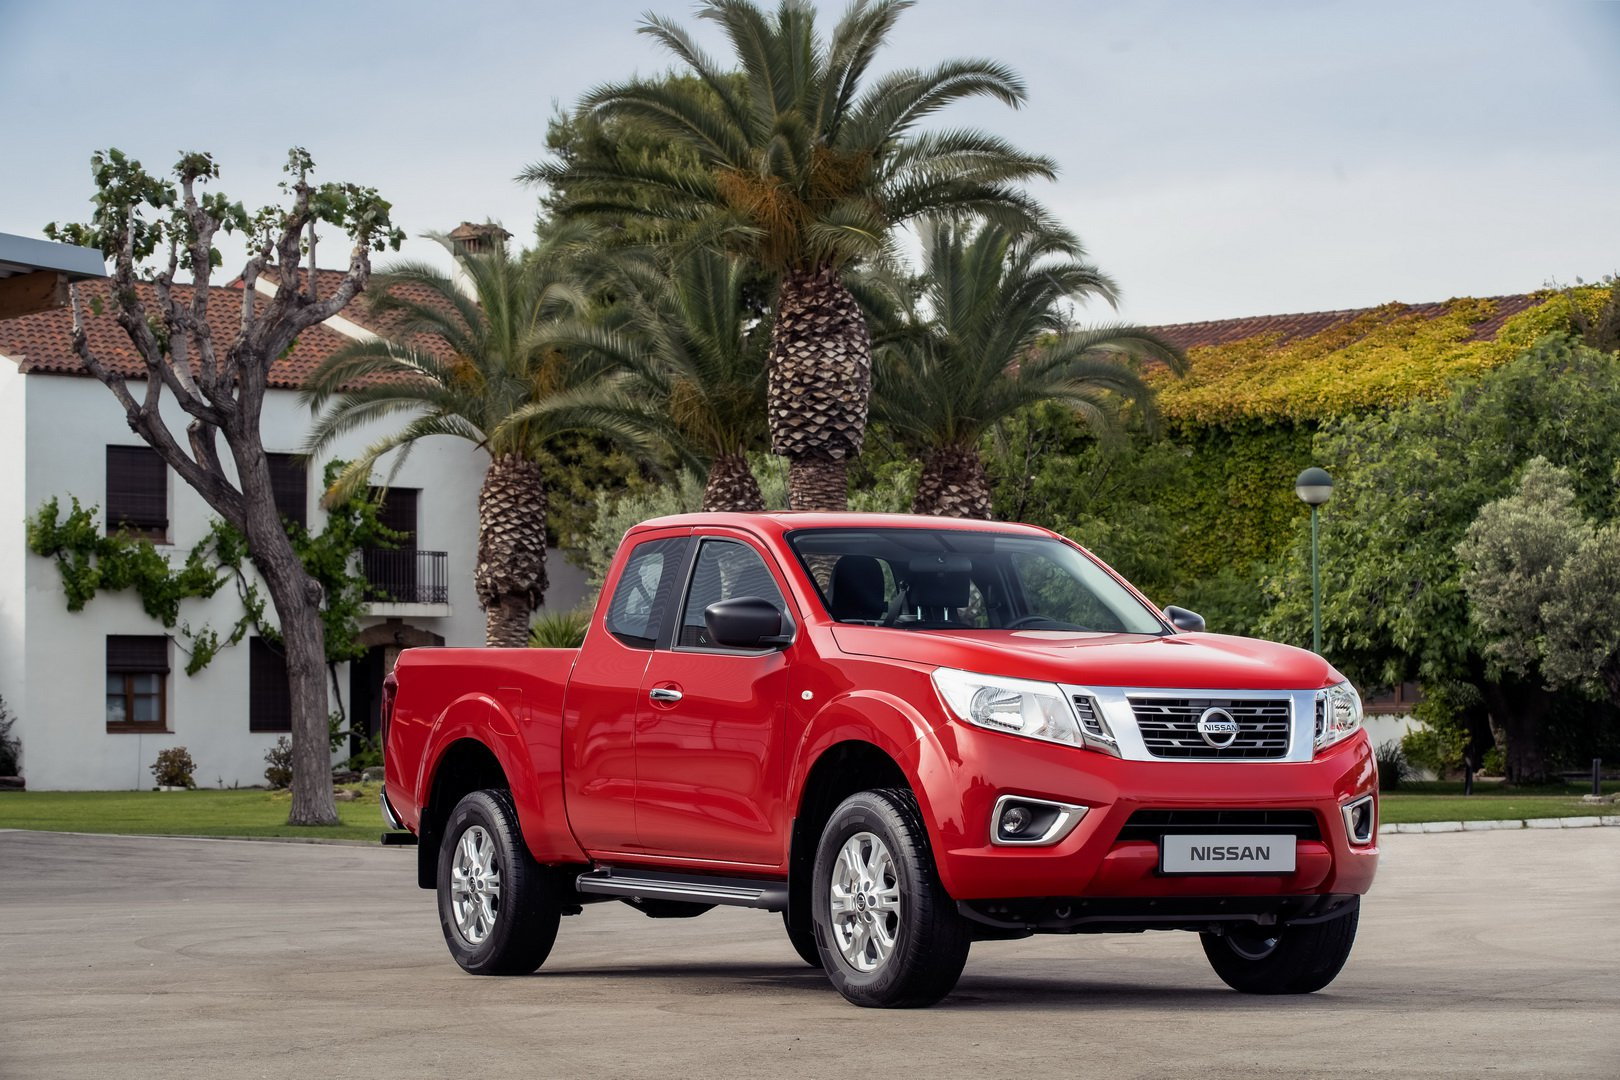 nissan-updates-navara-for-2020-now-comes-with-twin-turbo-diesel-as-standard_9